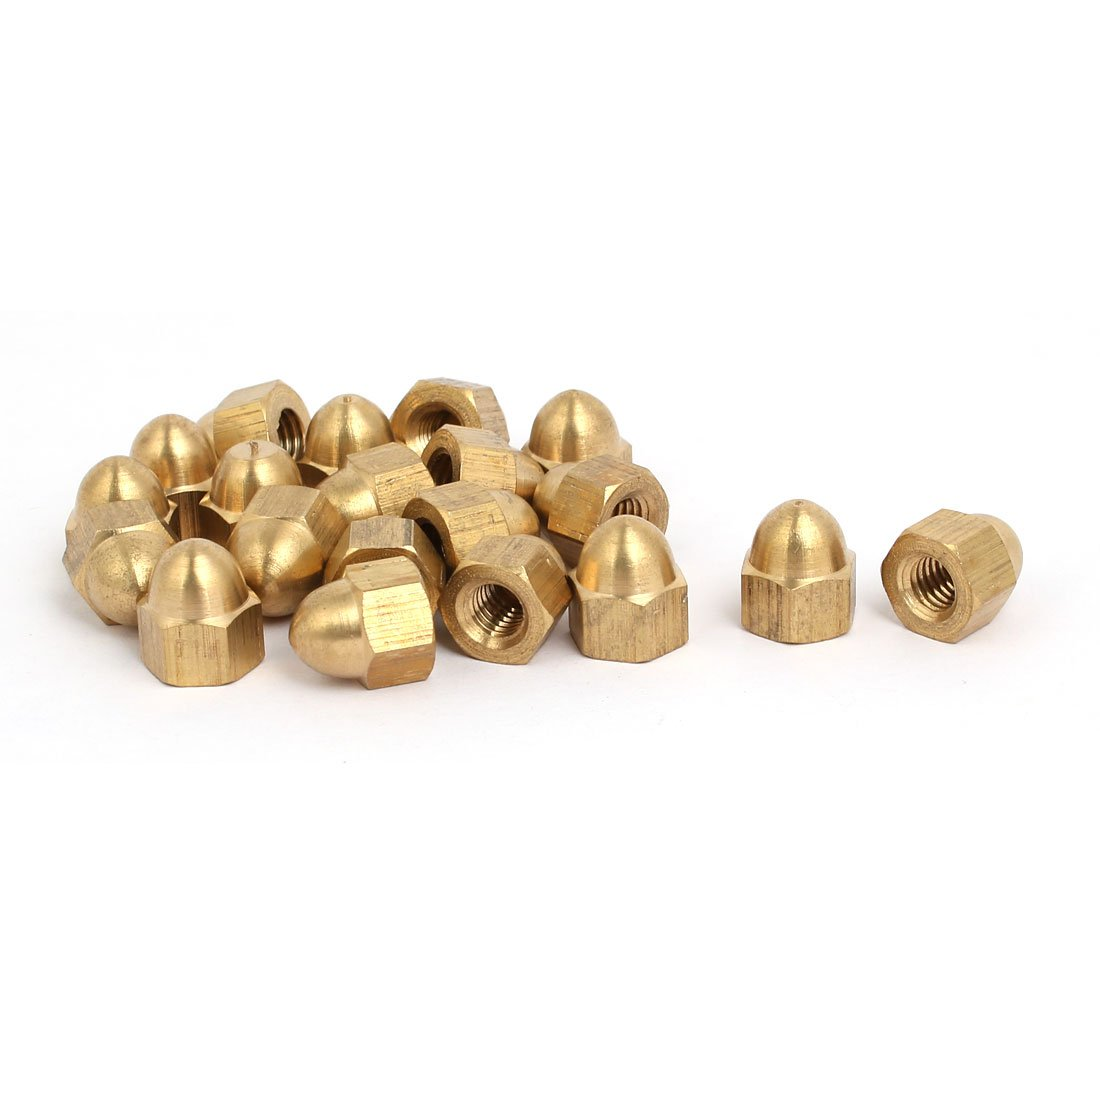 sourcingmap® 20pcs M6 Female Thread Nut DIN1587 Dome Cap Head Hex Brass Tone a17042400ux0016